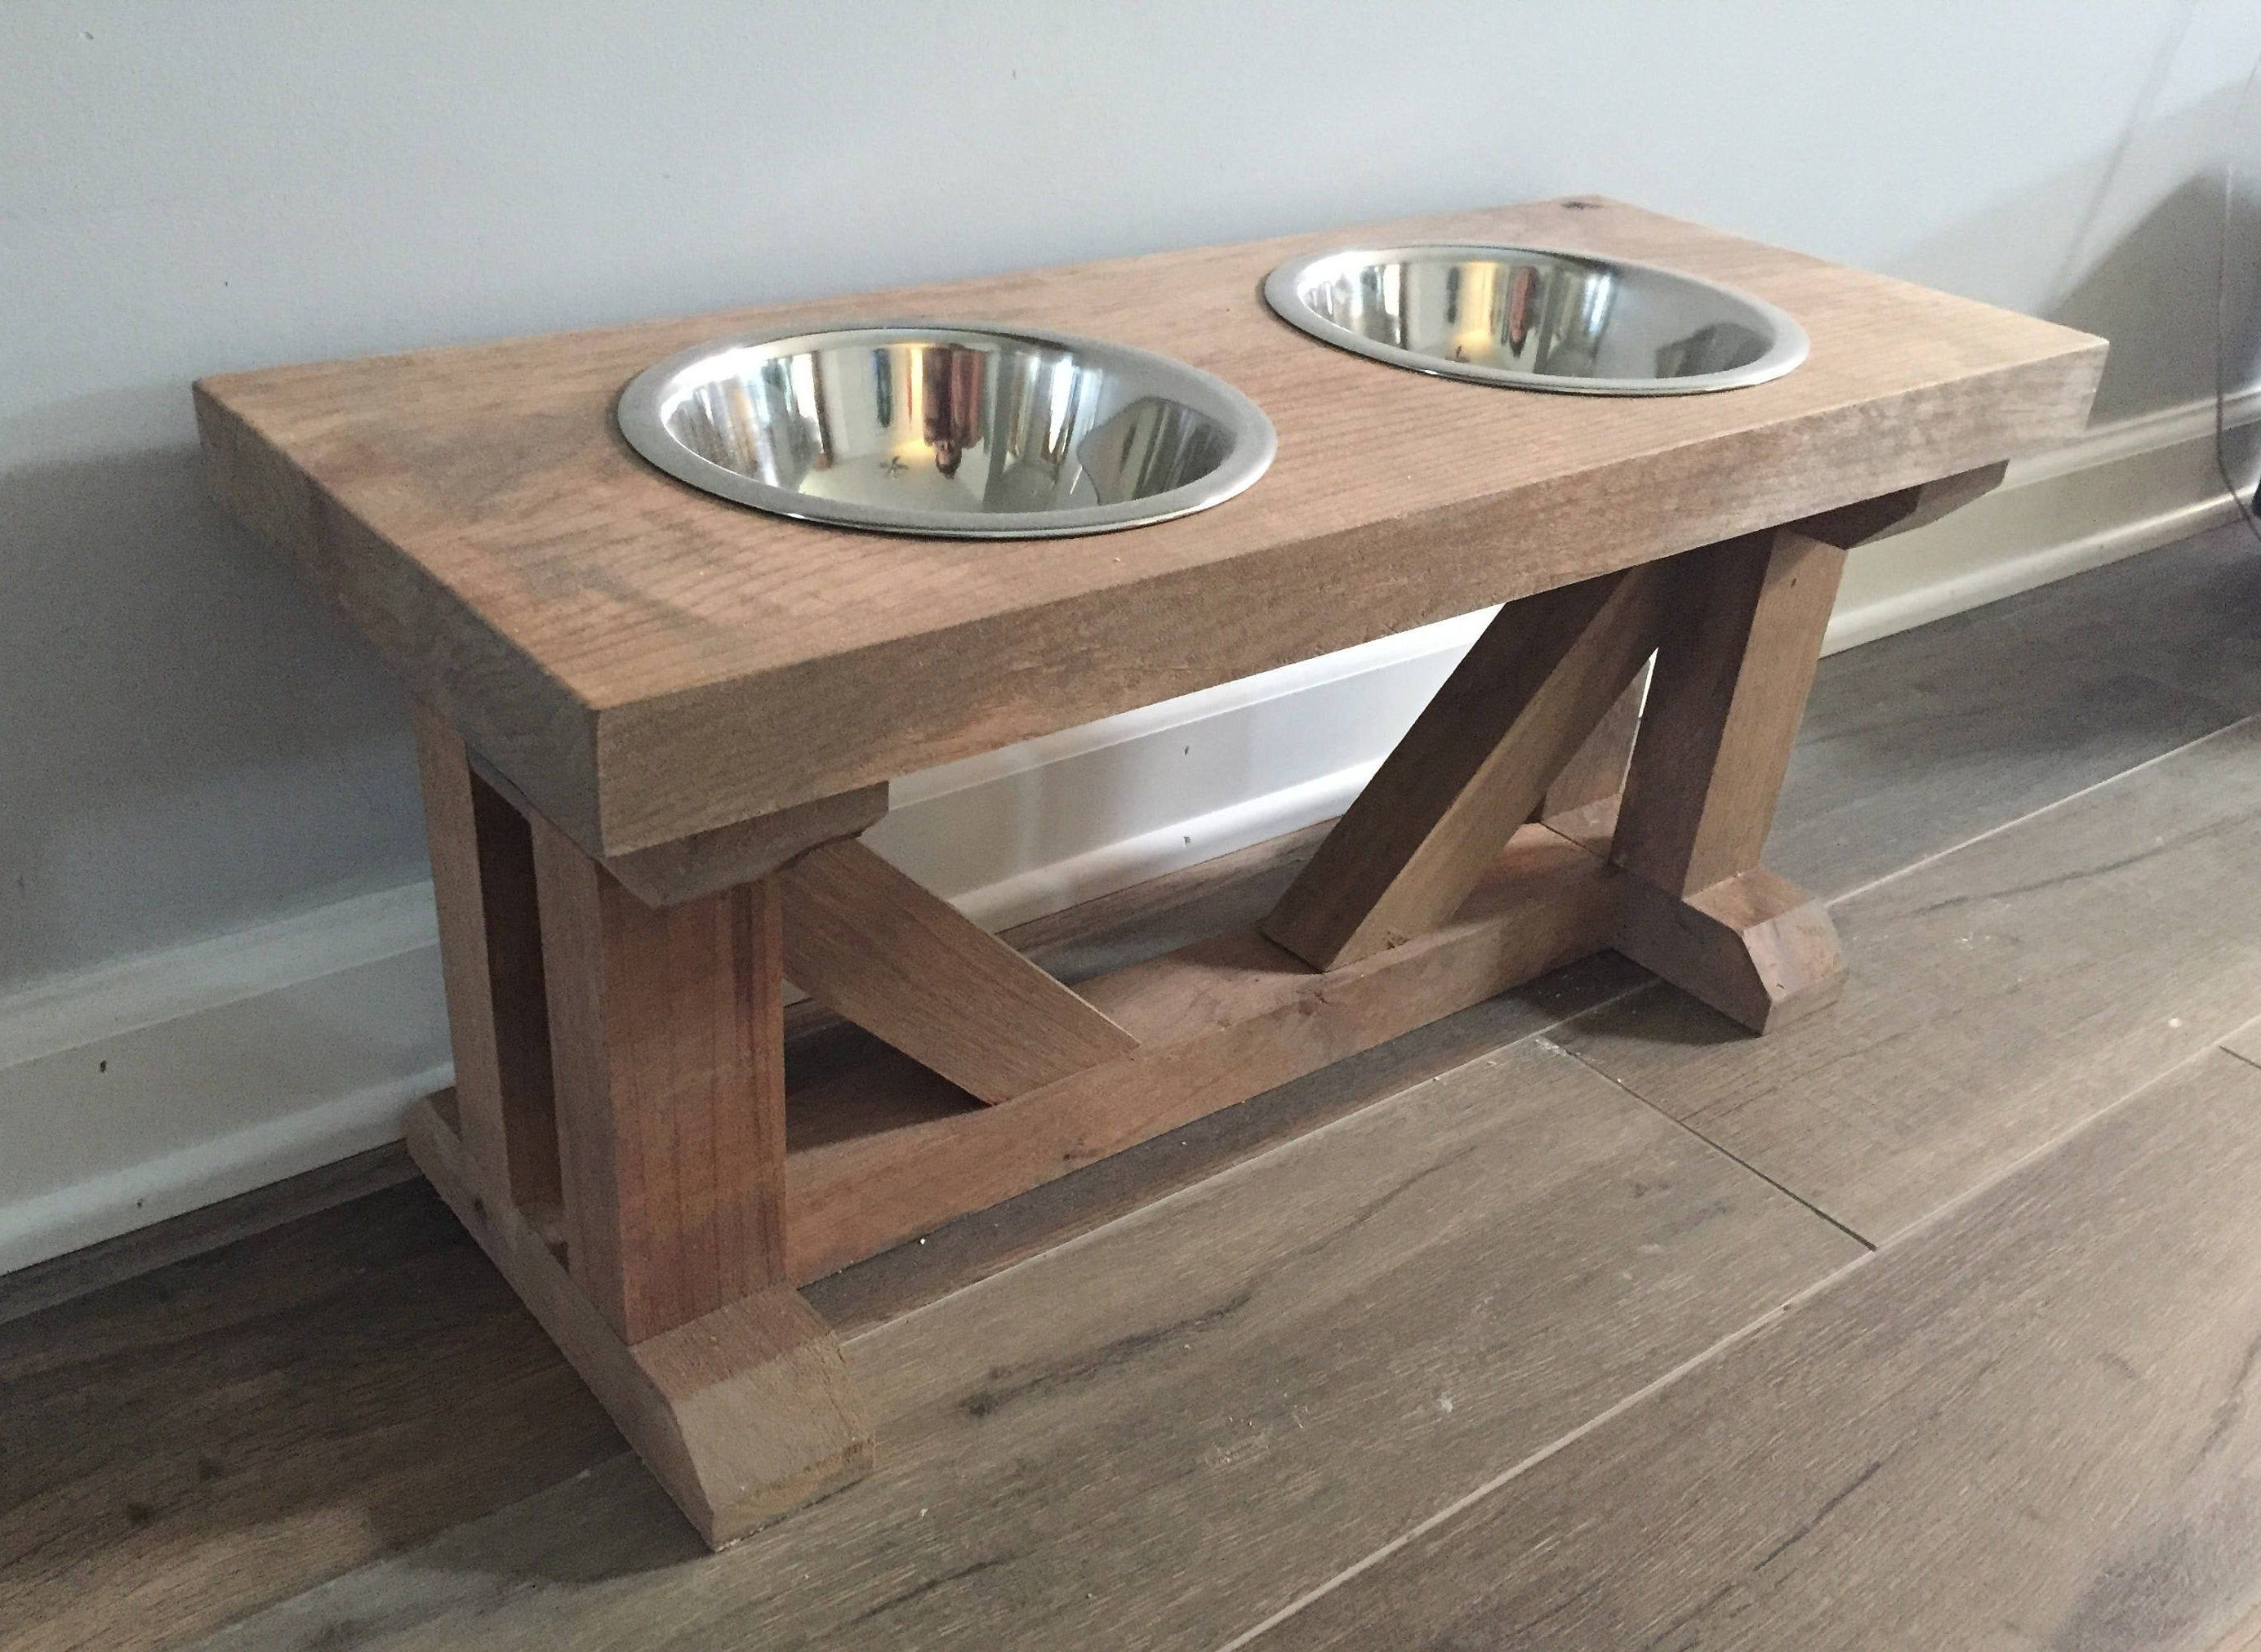 Dog bowl feeder stand elevated raised stand